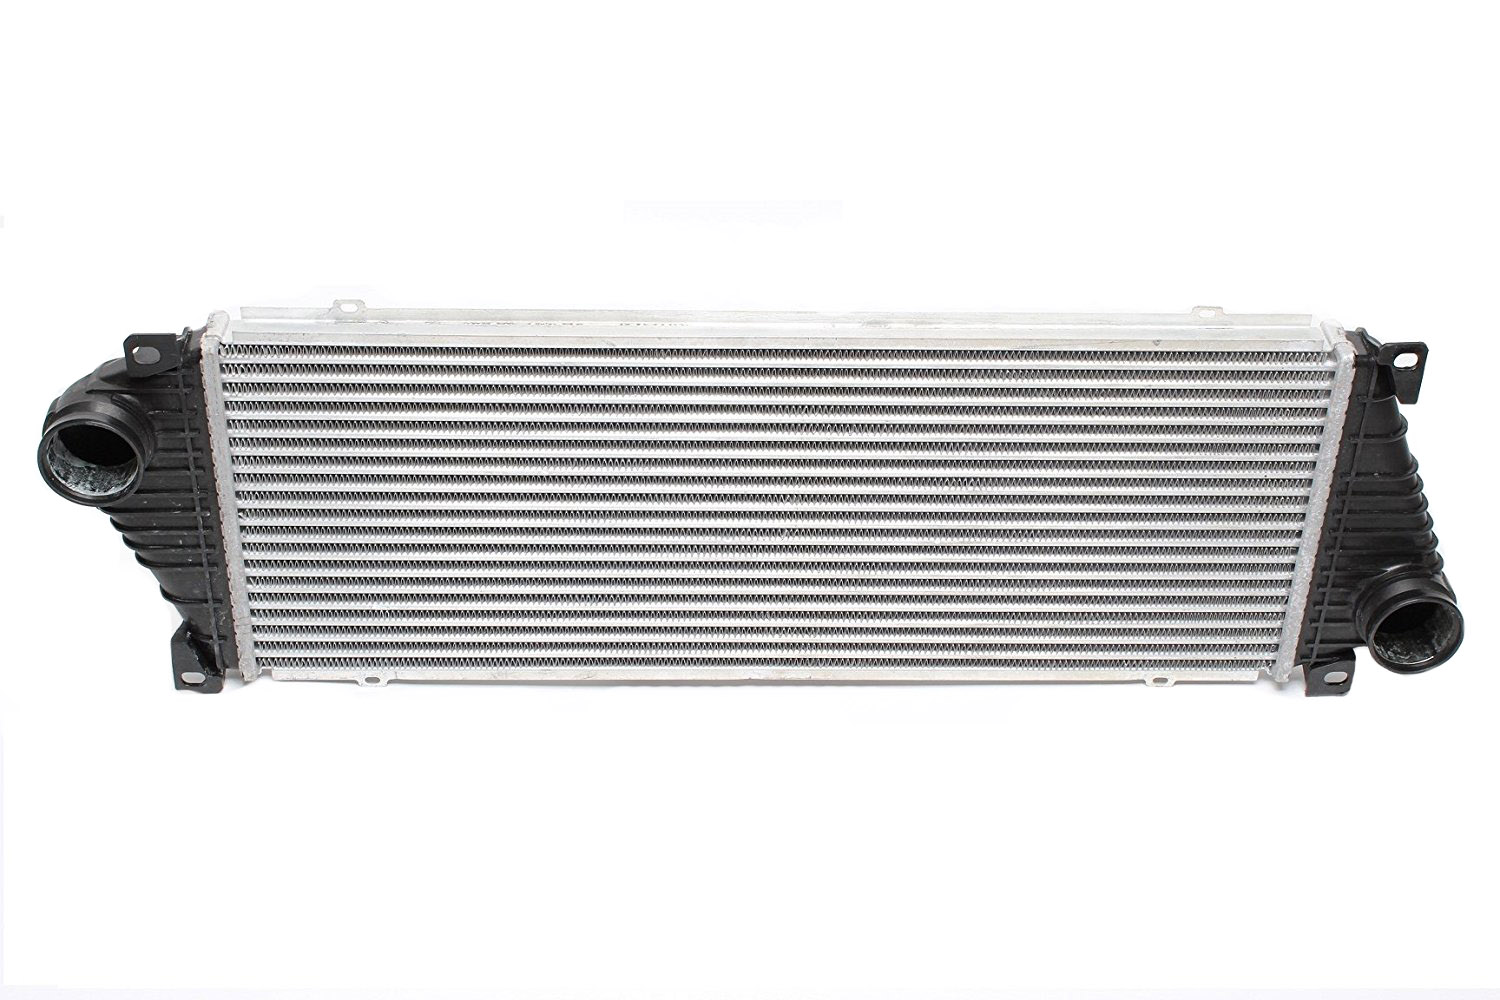 Turbo Radyatörü Intercooler - LT35 - Crafter